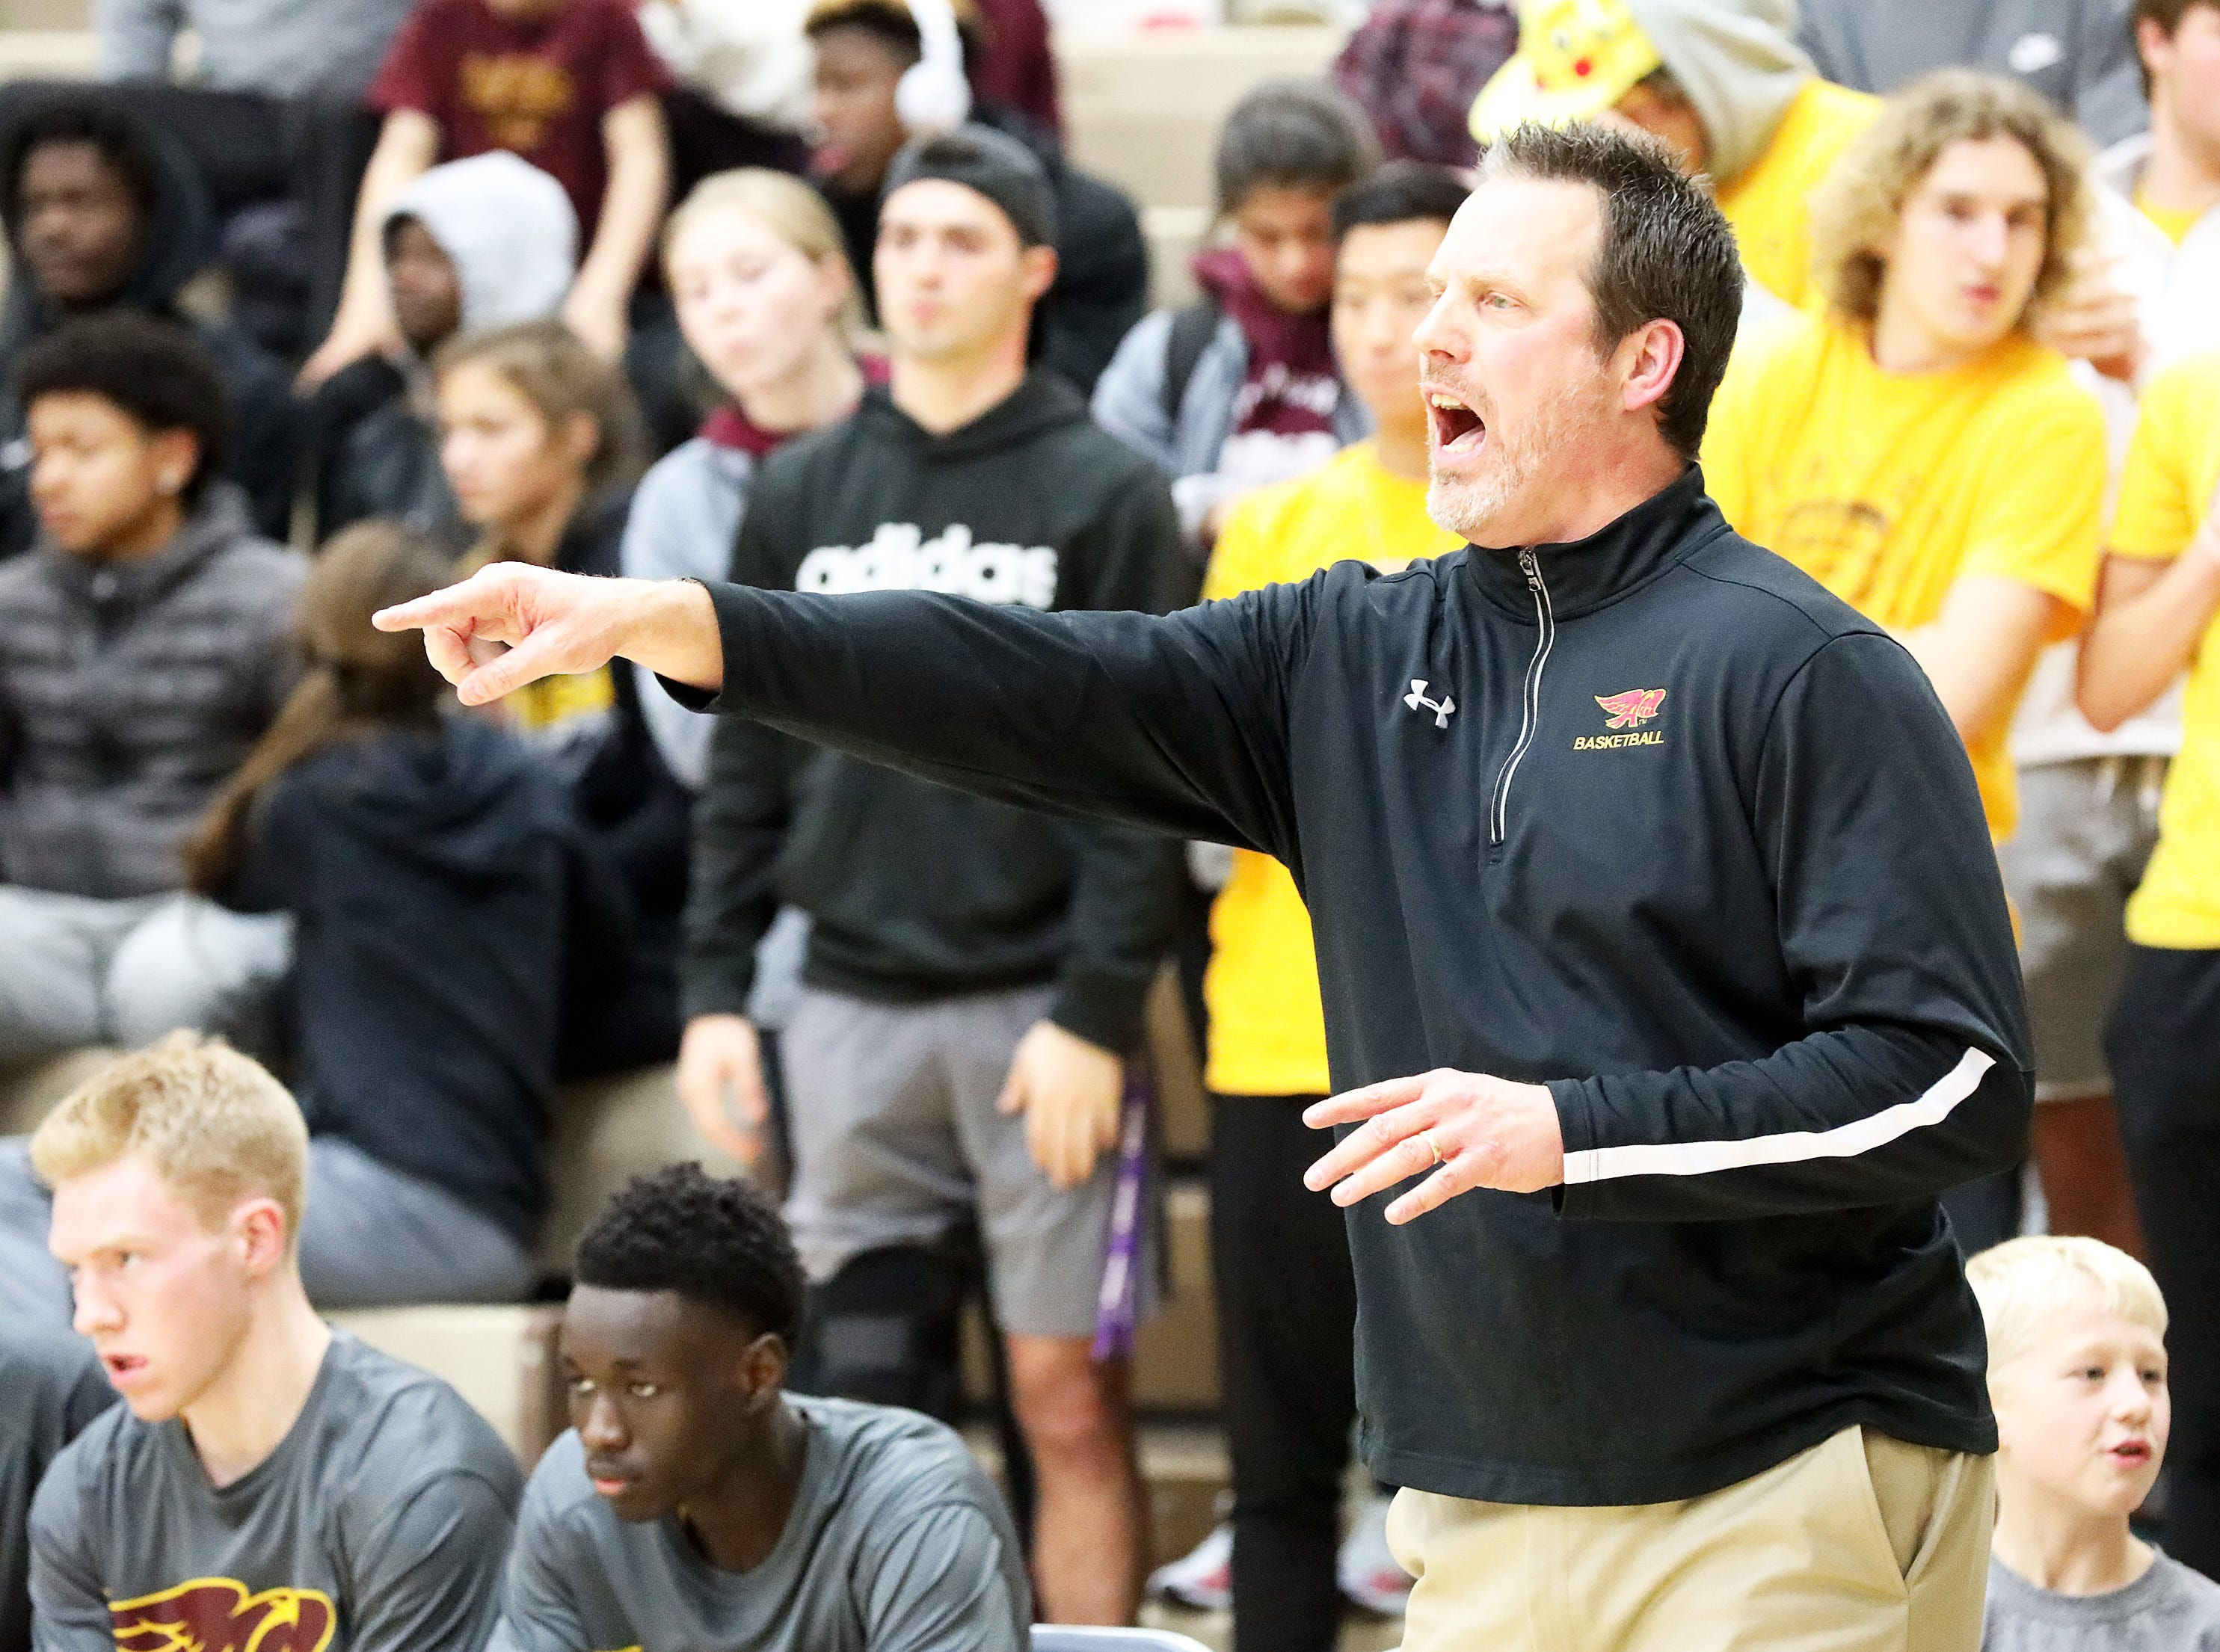 Ankeny Hawks head coach Brandt Carlson directs his team as the Ankeny Hawks compete against the Urbandale J-Hawks in high school basketball on Friday, Dec. 14, 2018 at Urbandale High School. Ankeny won 62 to 52 to remain undefeated at 6-0.